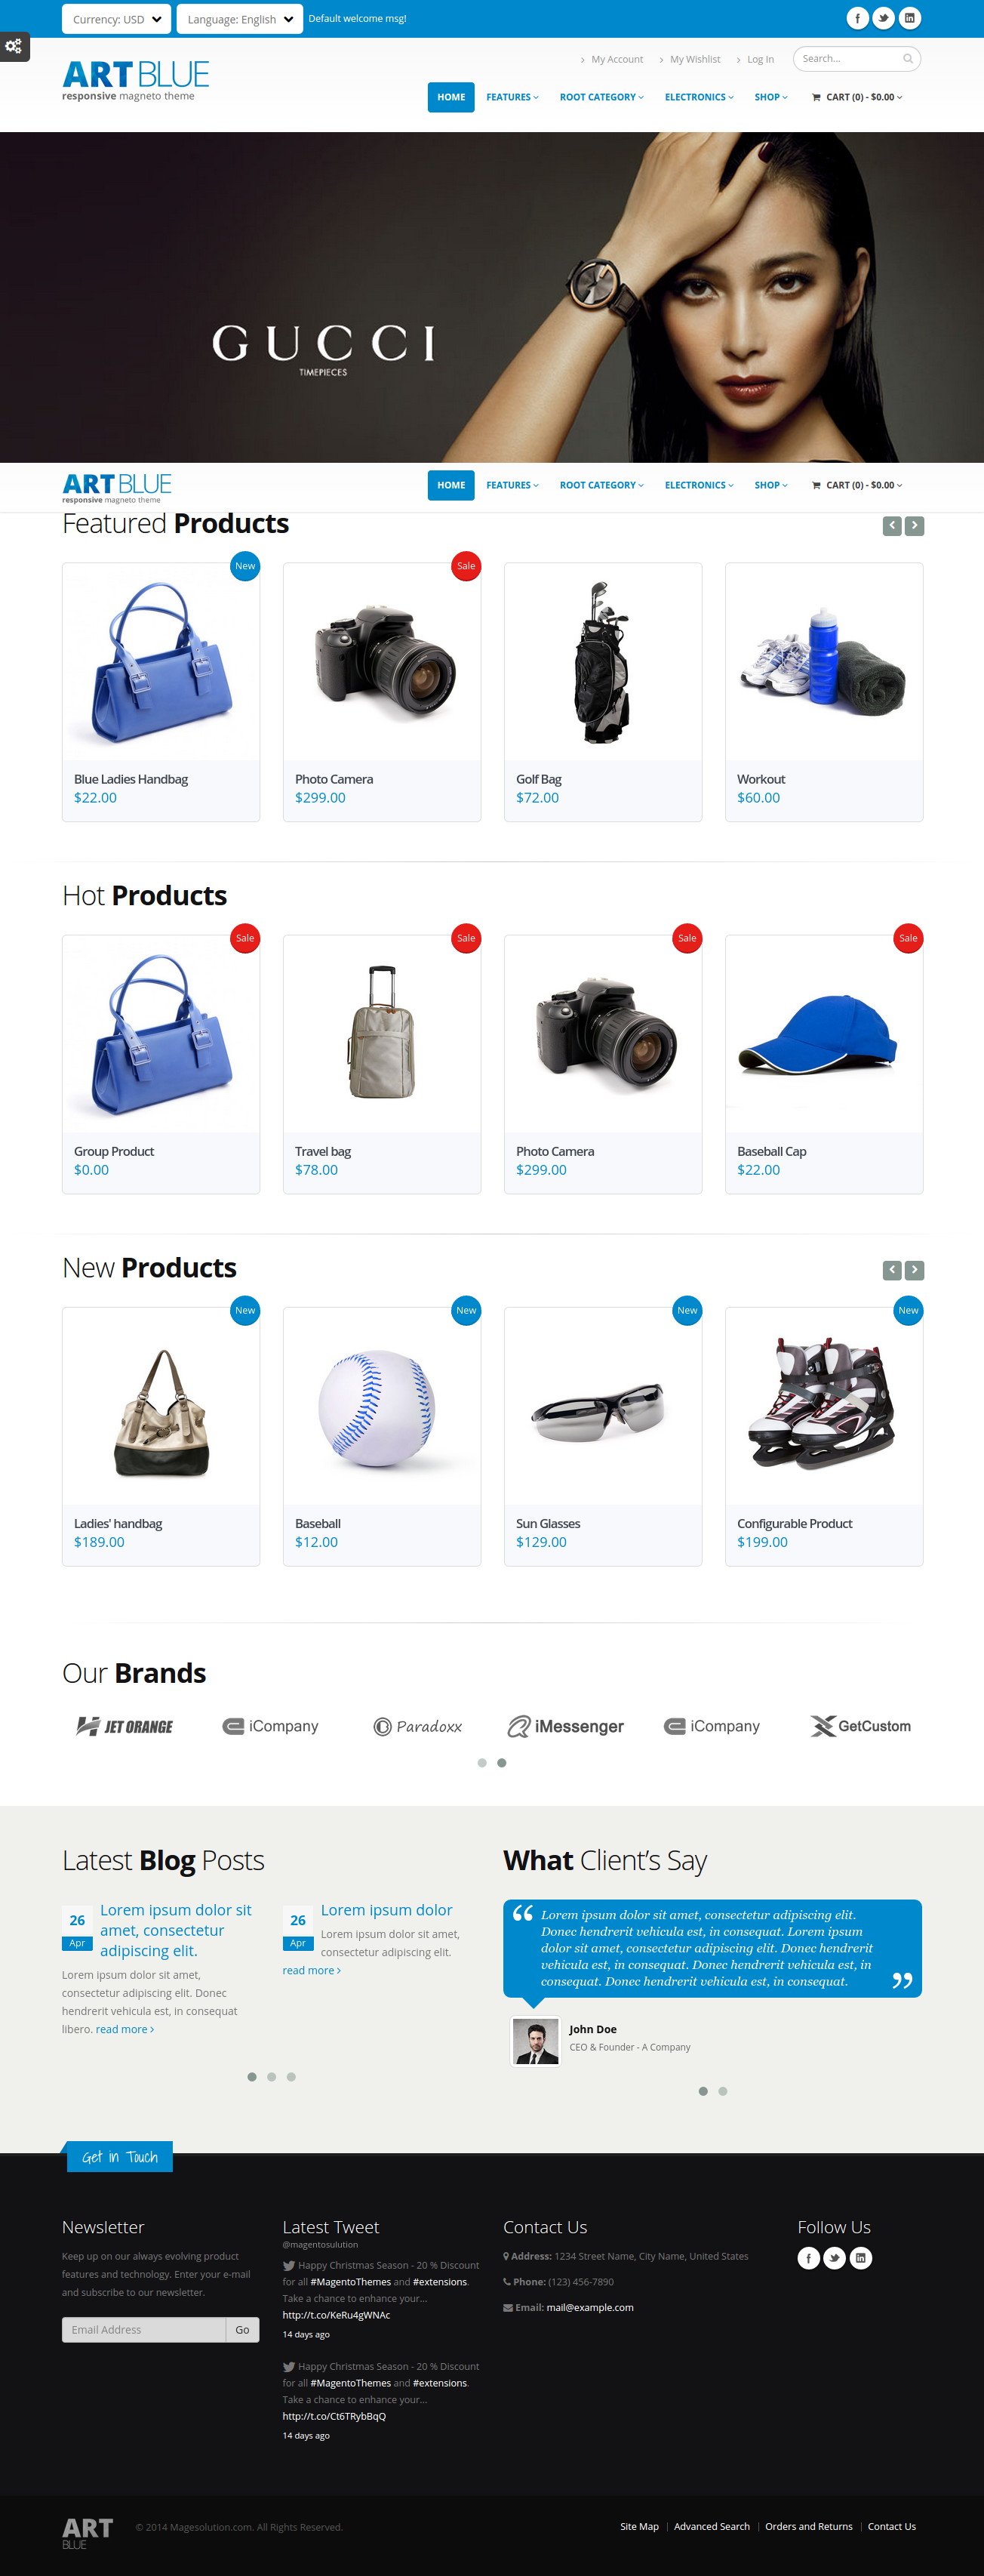 ART - Blue responsive Magento theme